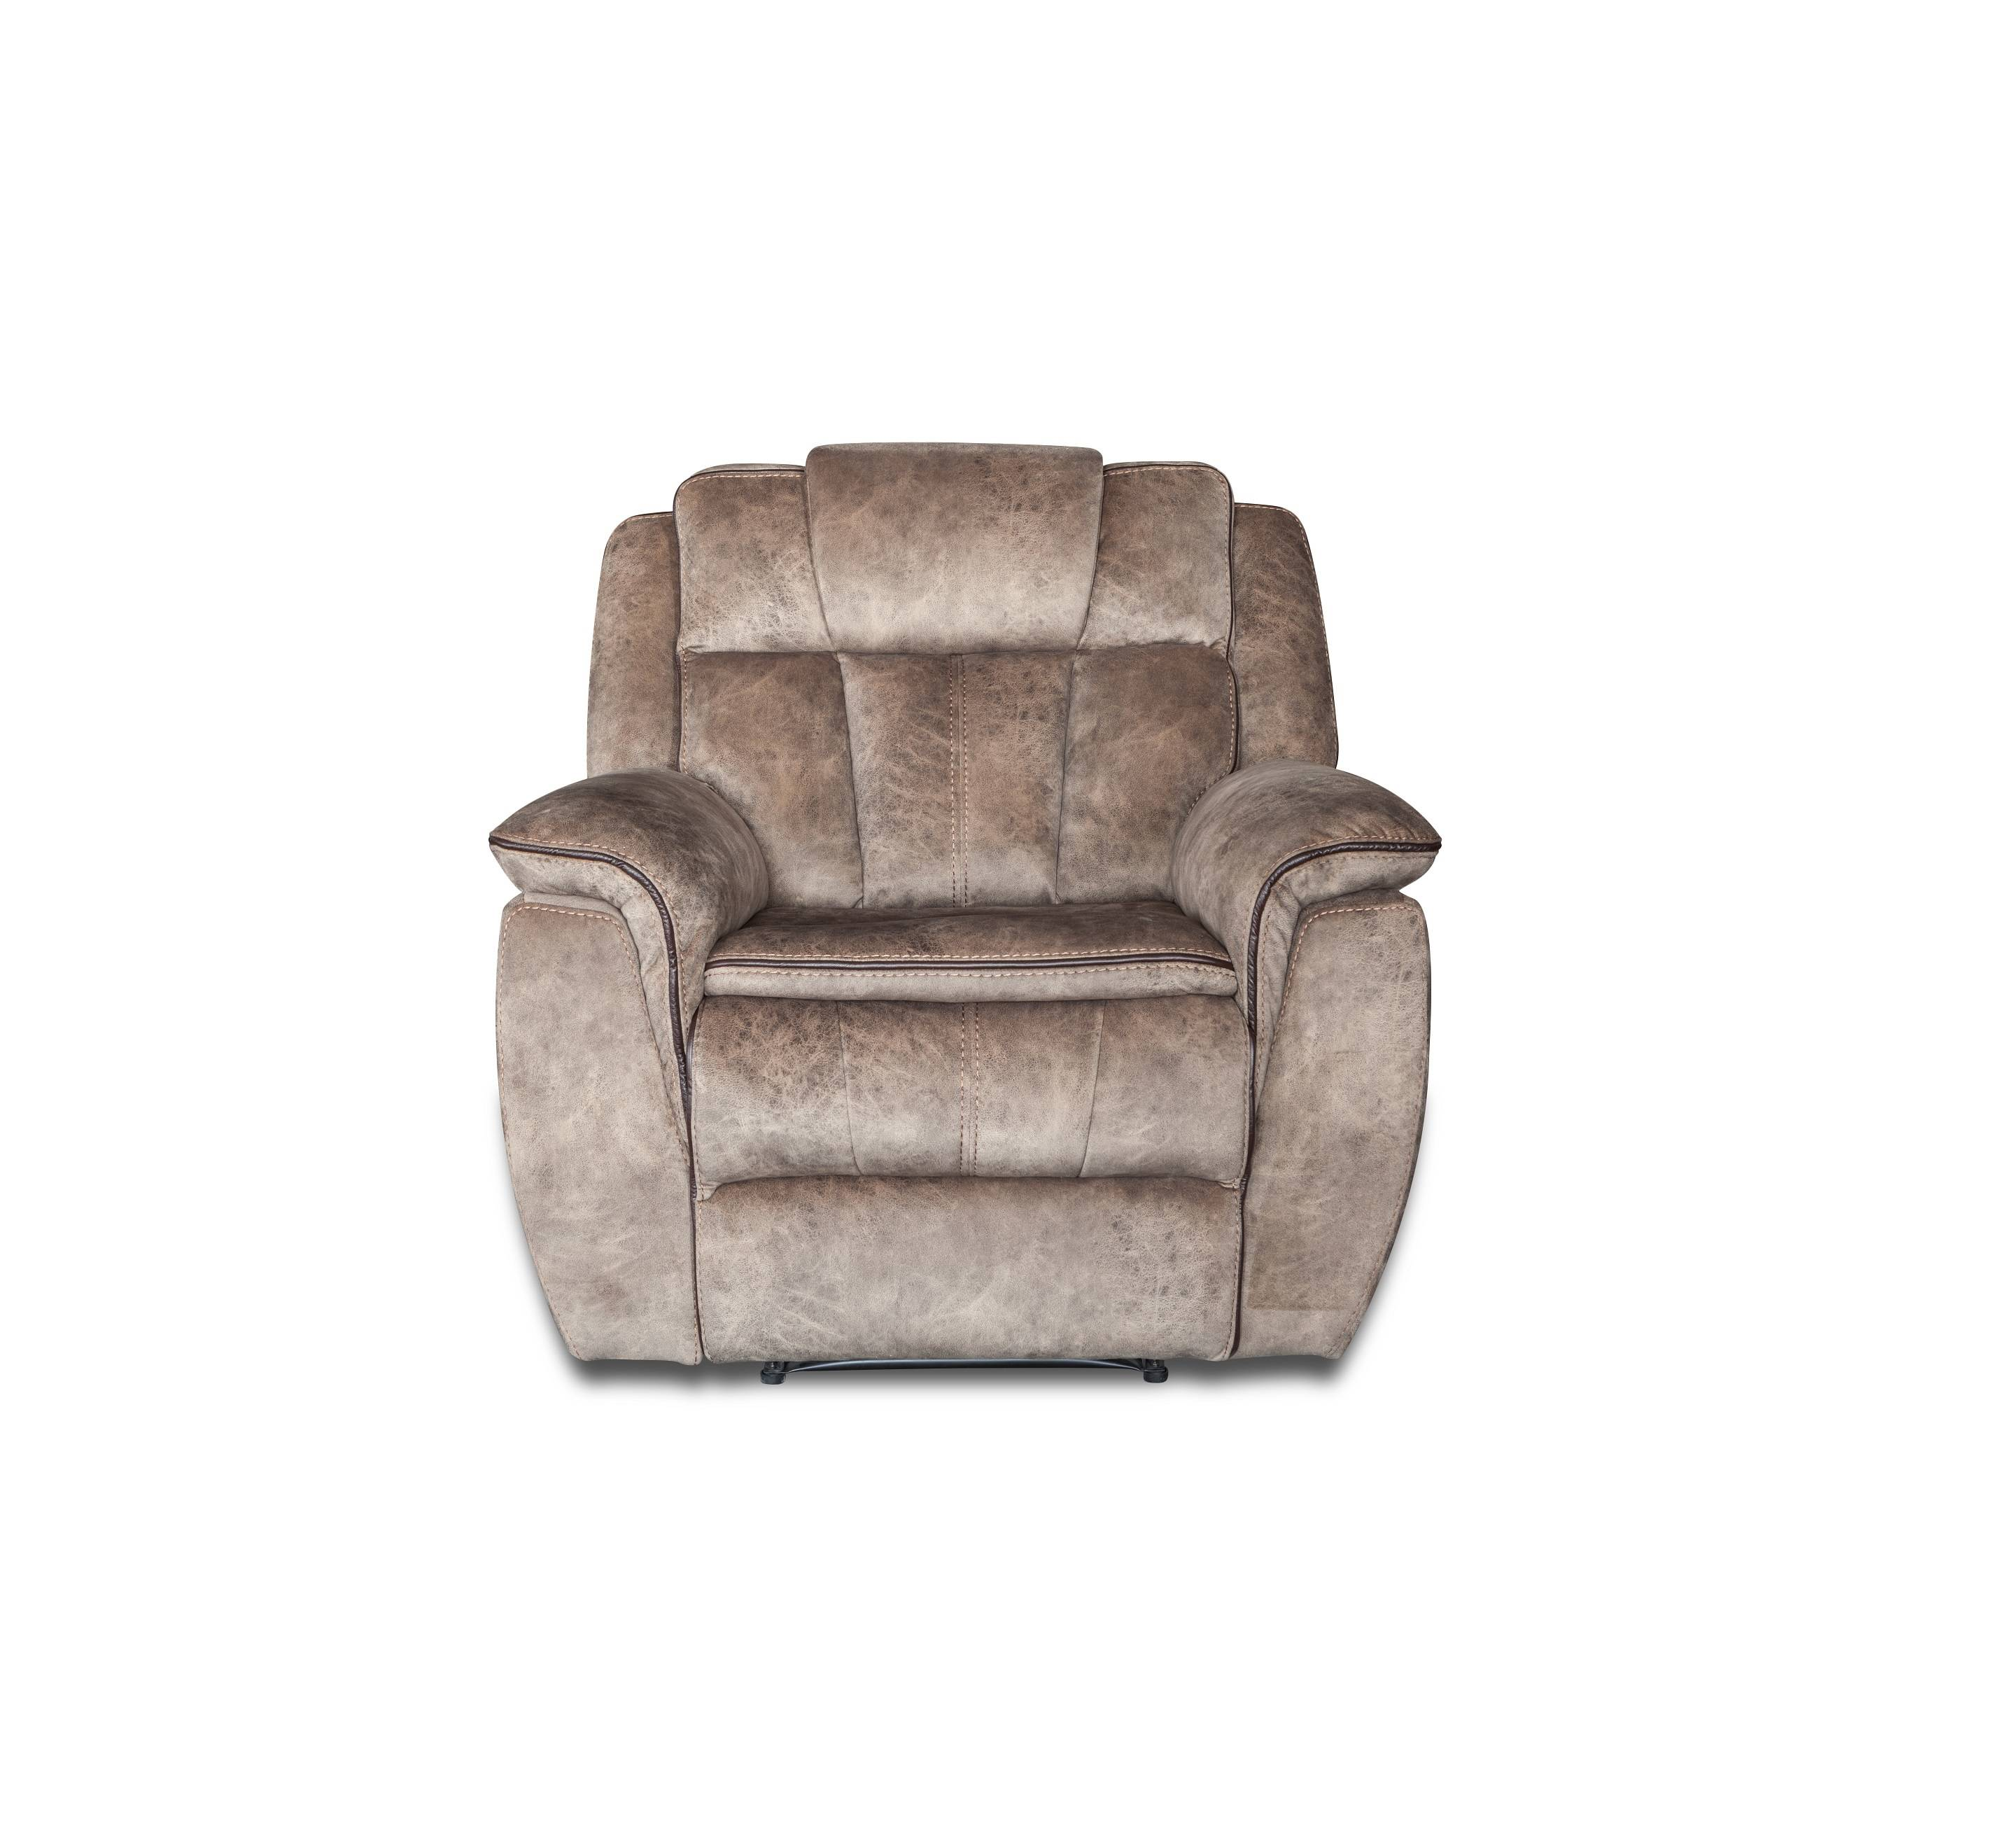 Modern living room simple style fabric recliner leisure chair sofa